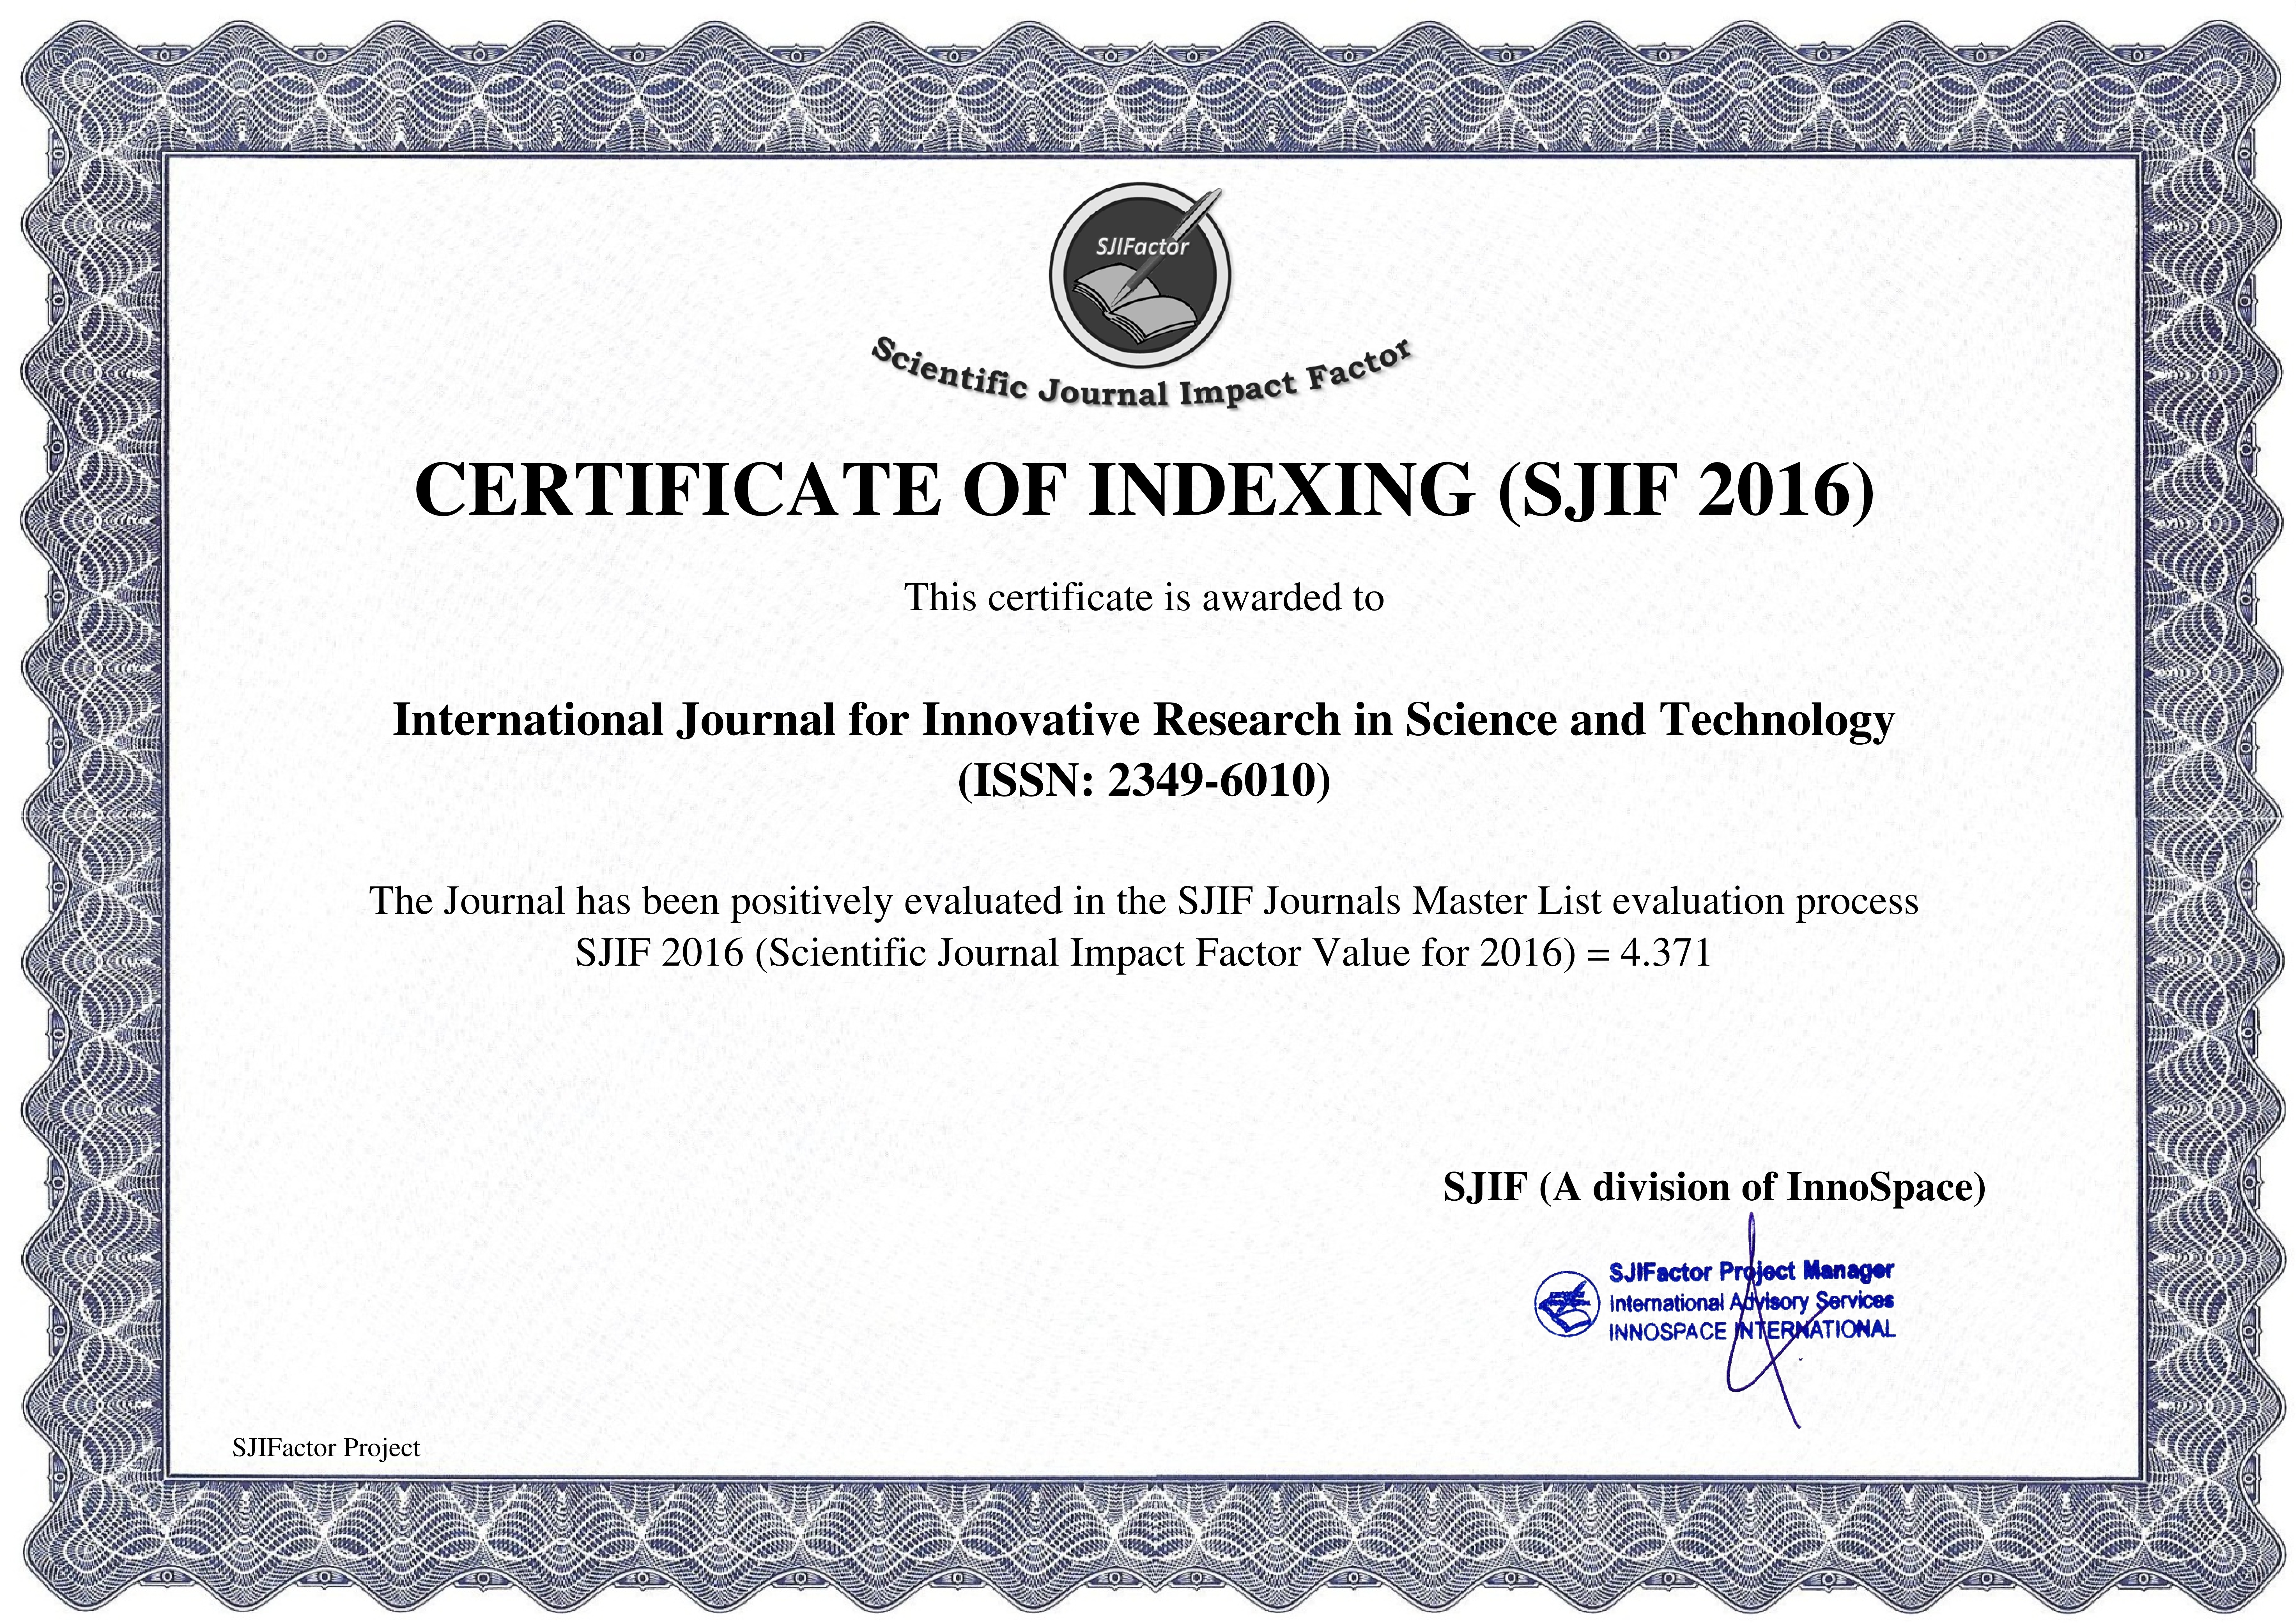 012 Impact Factor Research Paper How To Publish In International Journal Free Unusual Pdf Full